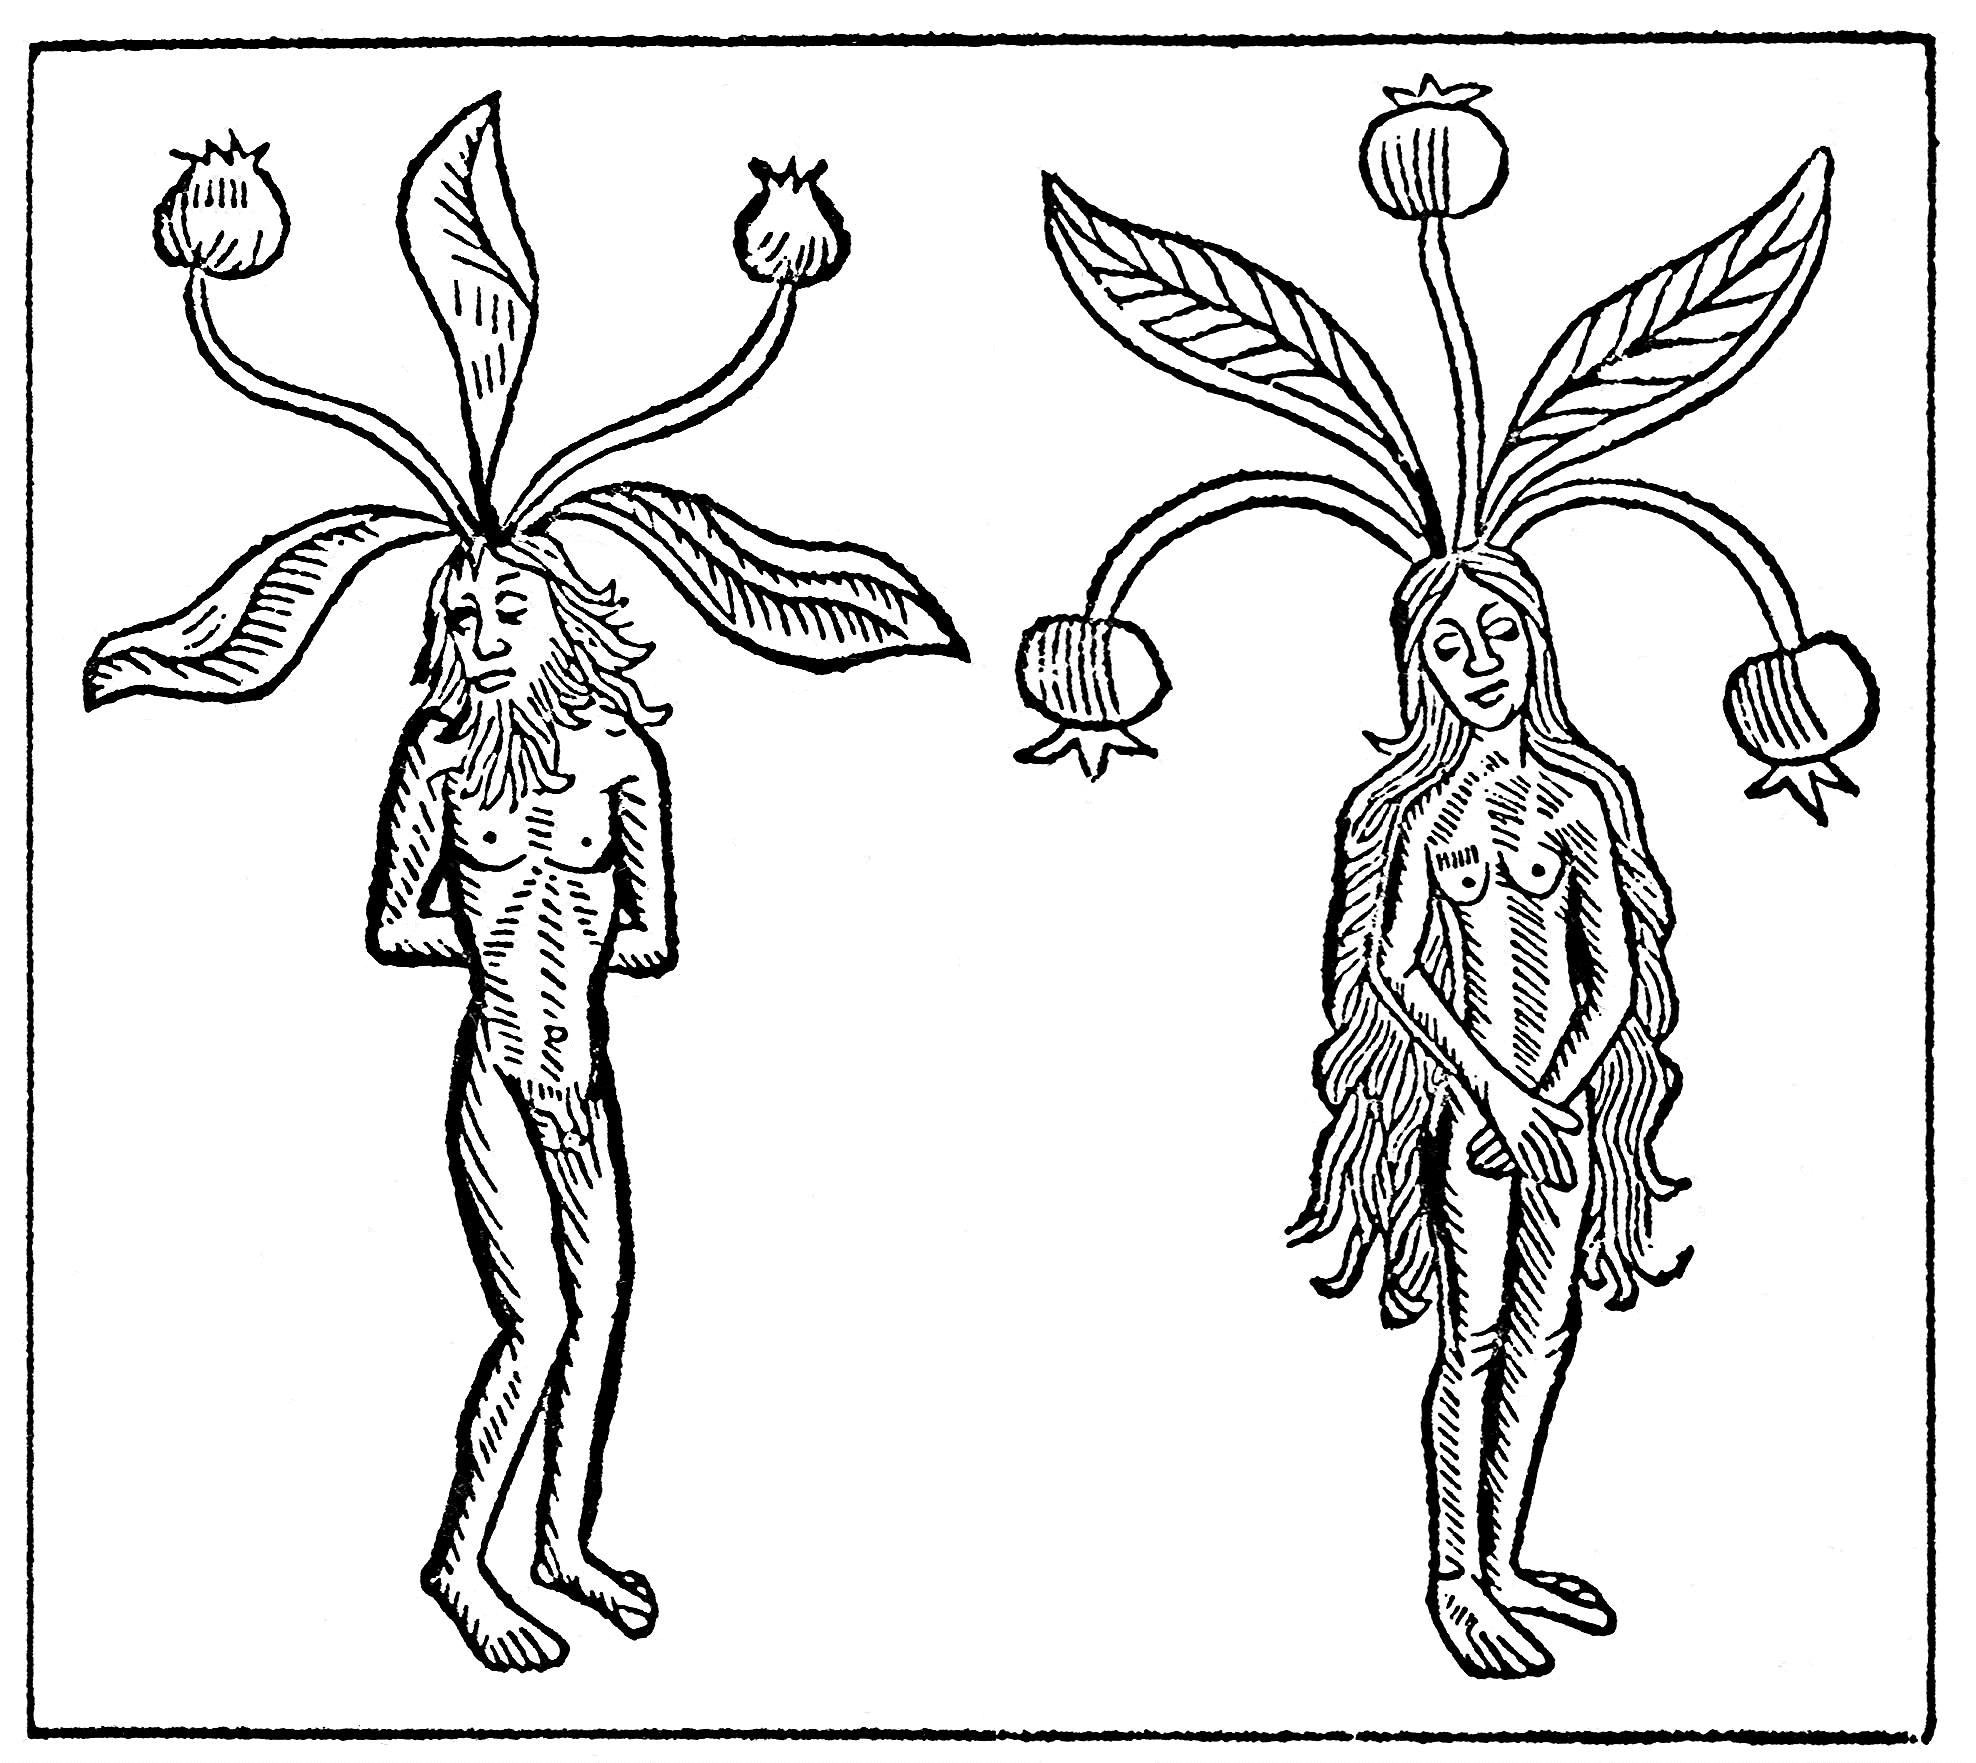 Mandrake man and woman from